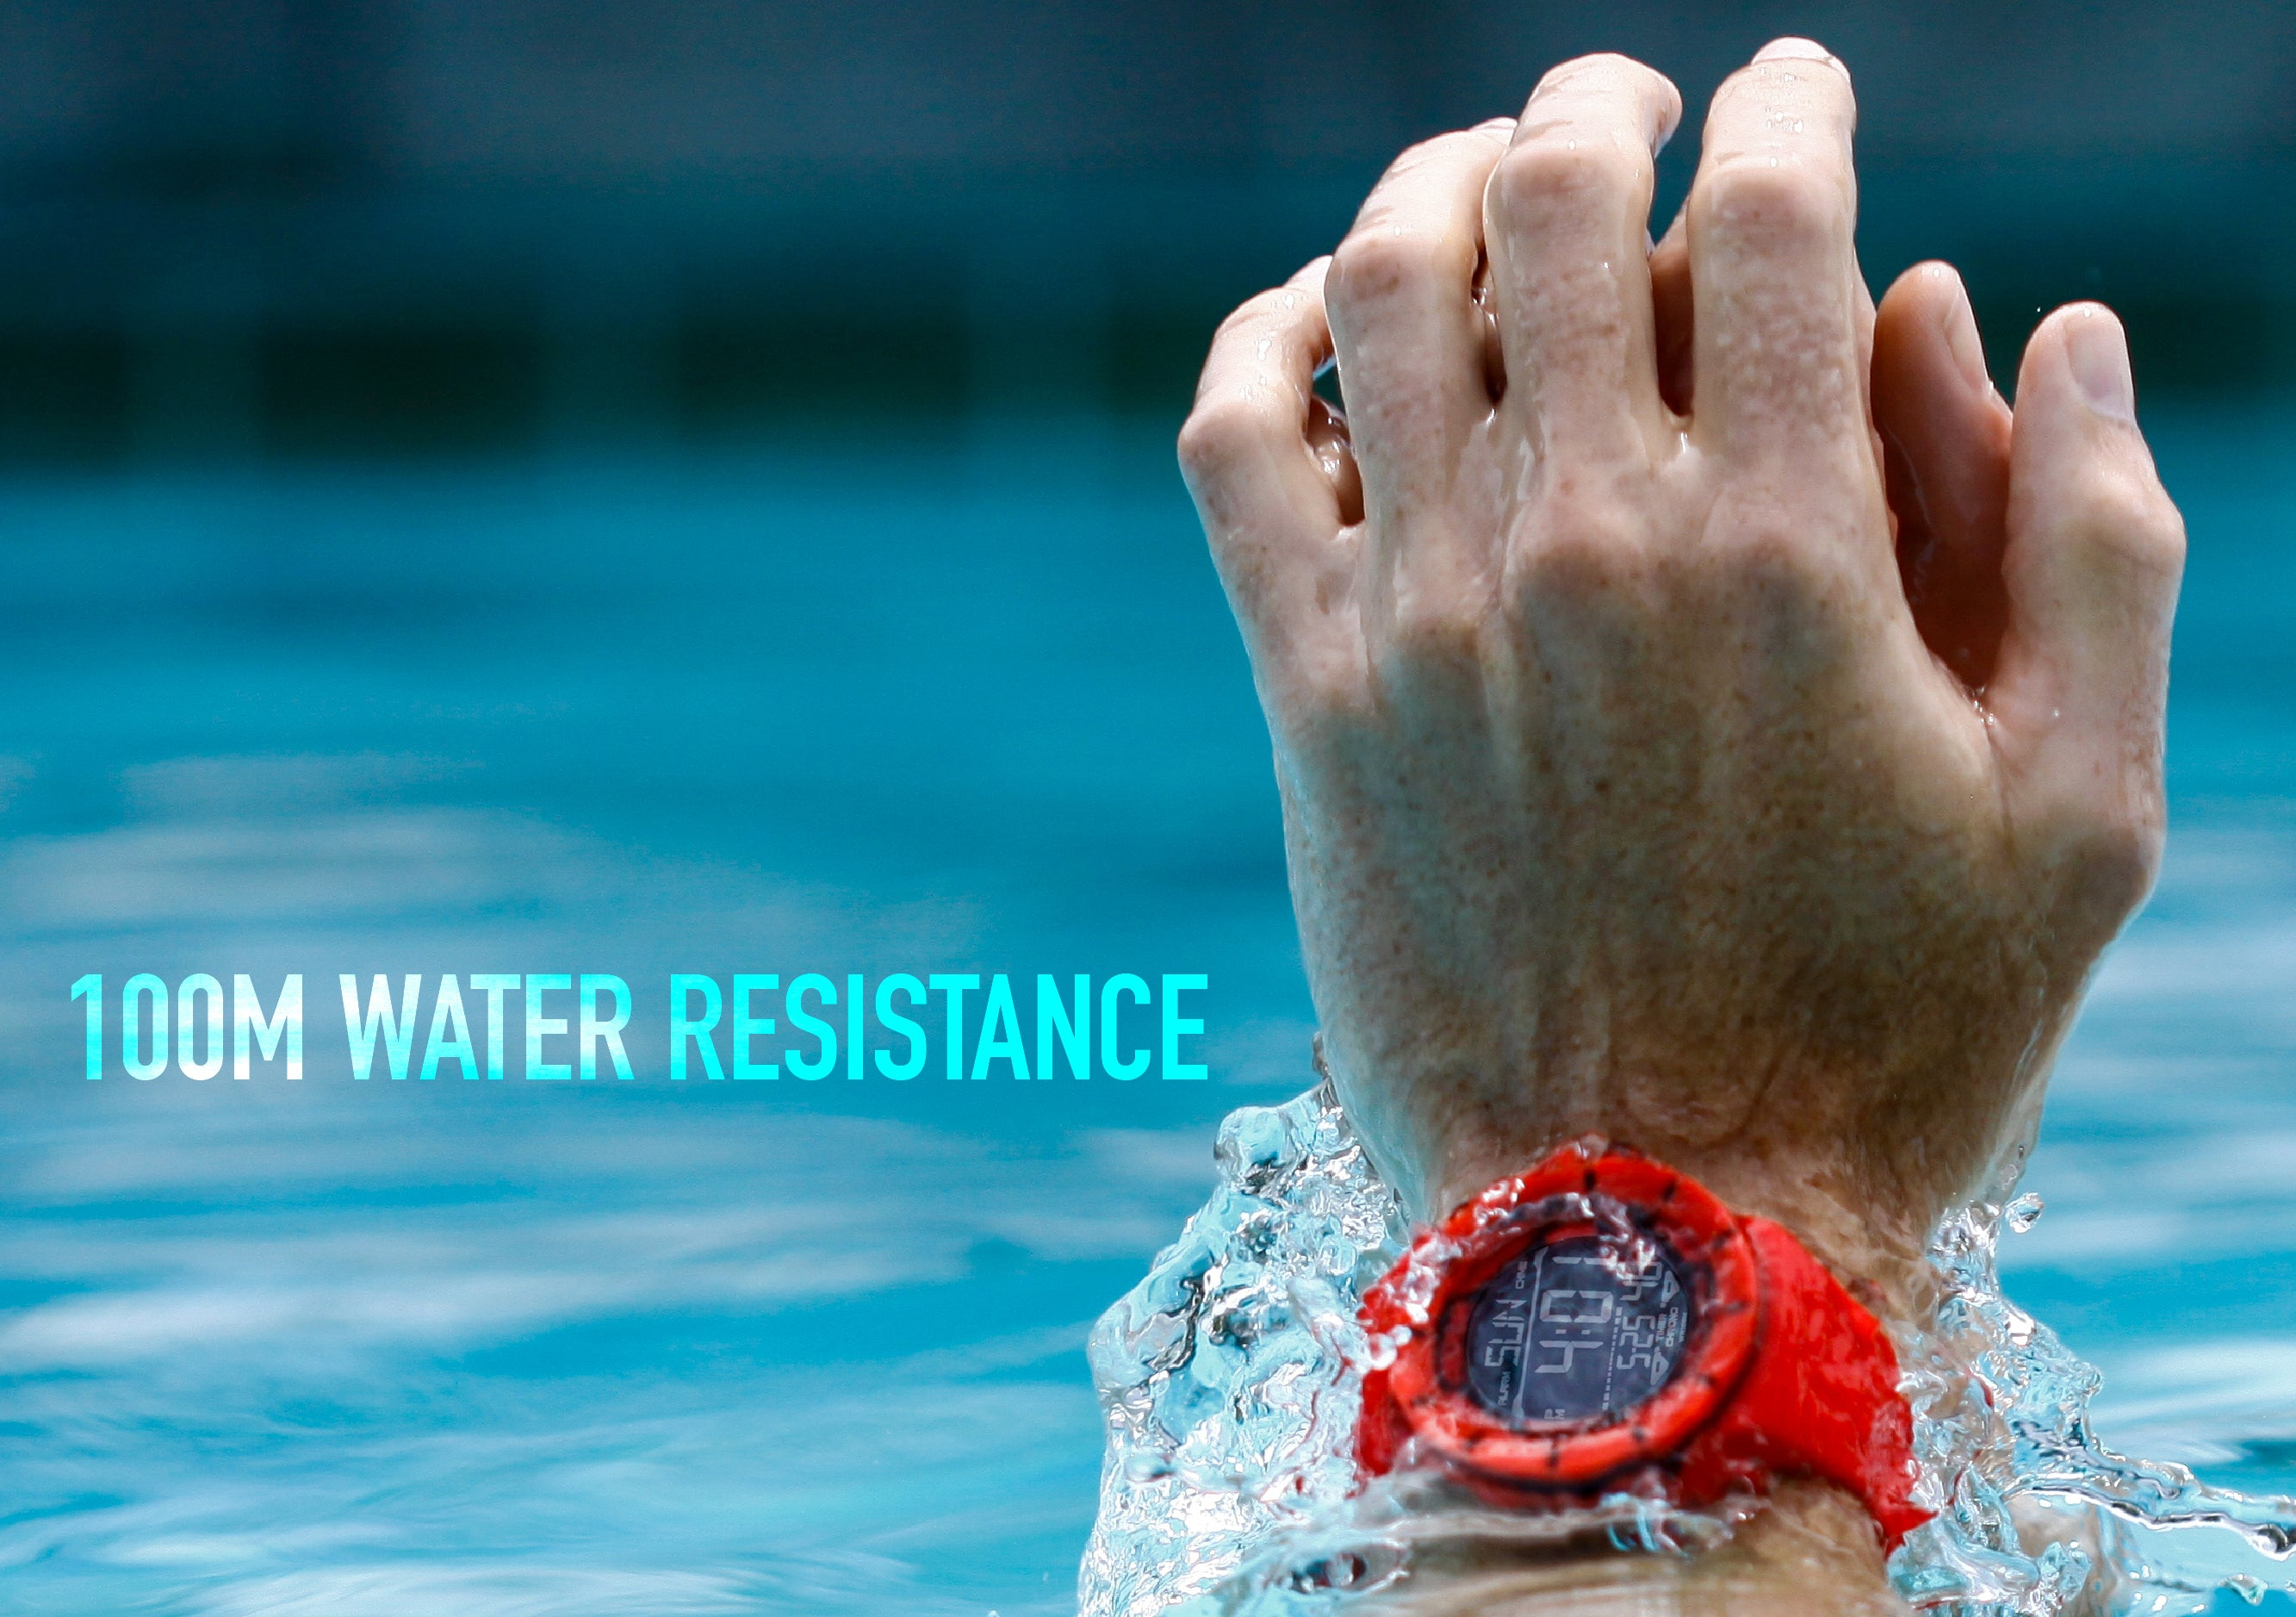 swimmer wearing coliseum watch